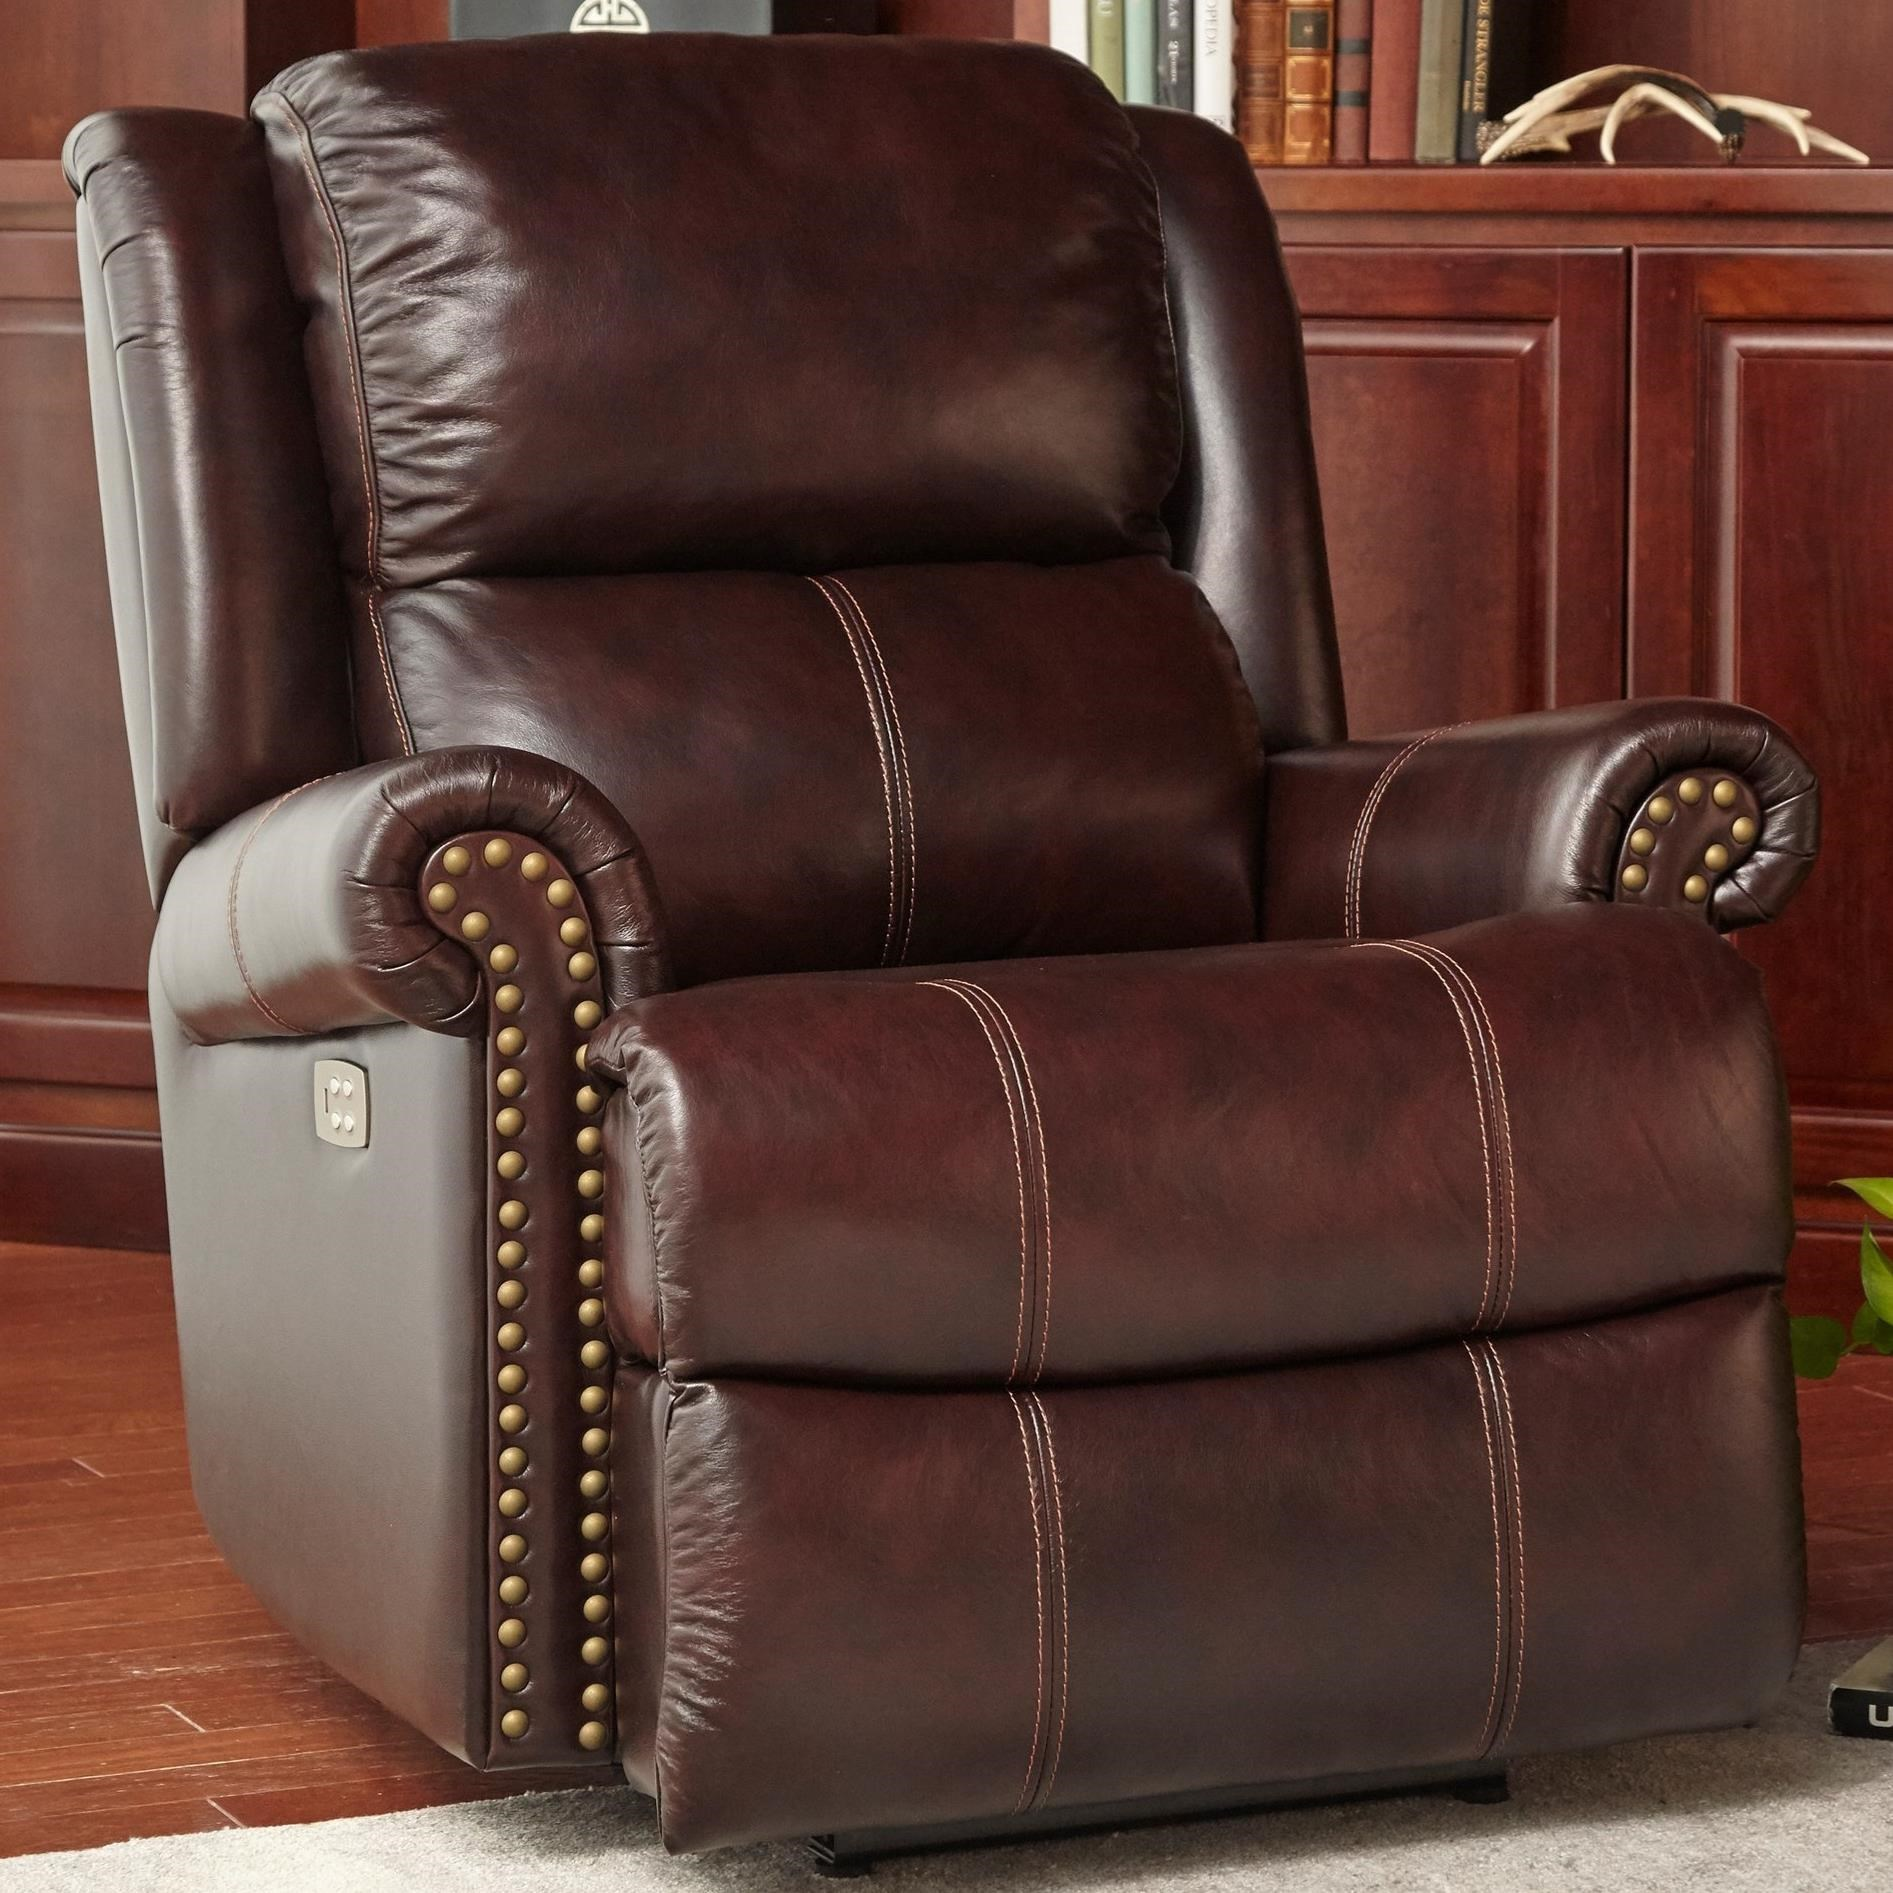 Cheers Sofa Brooks Brooks Pecan Power Recliner with Power Headrest - Great American Home Store - Three Way Recliners  sc 1 st  Great American Home Store & Cheers Sofa Brooks Brooks Pecan Power Recliner with Power Headrest ... islam-shia.org